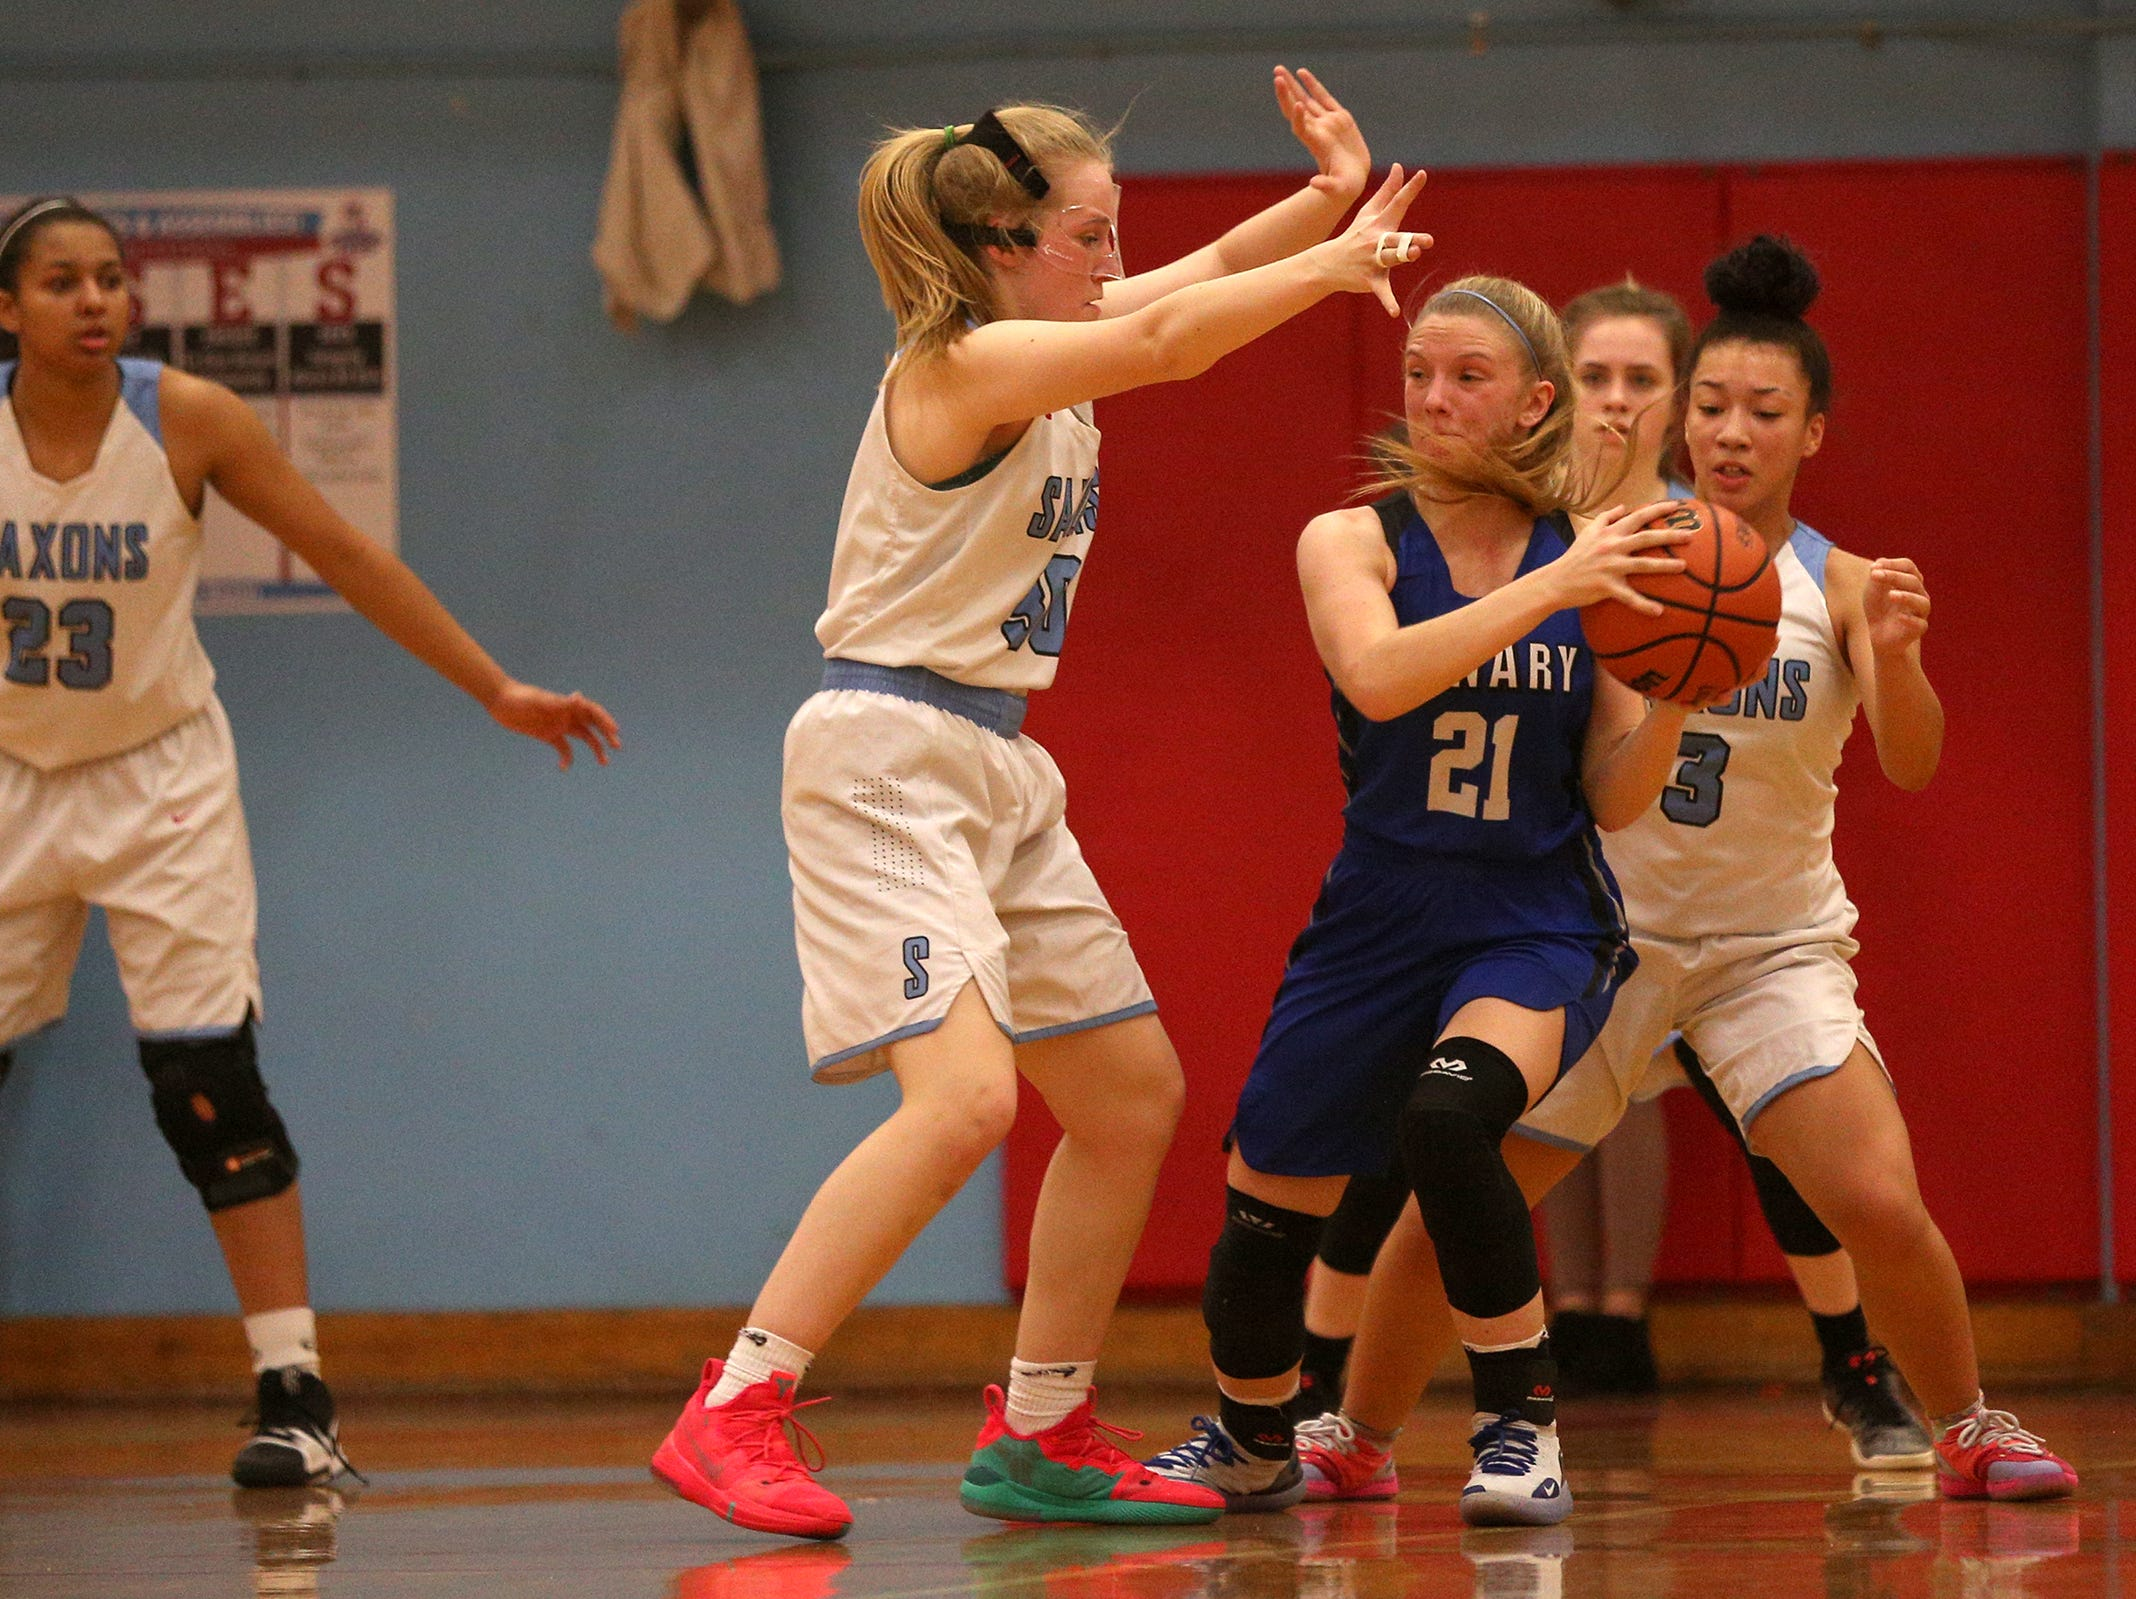 McNary's Abigail Hawley (21) looks to make her way around South Salem's defense during the South Salem High School girls basketball game against McNary High School in Salem on Thursday, Jan. 31, 2019.